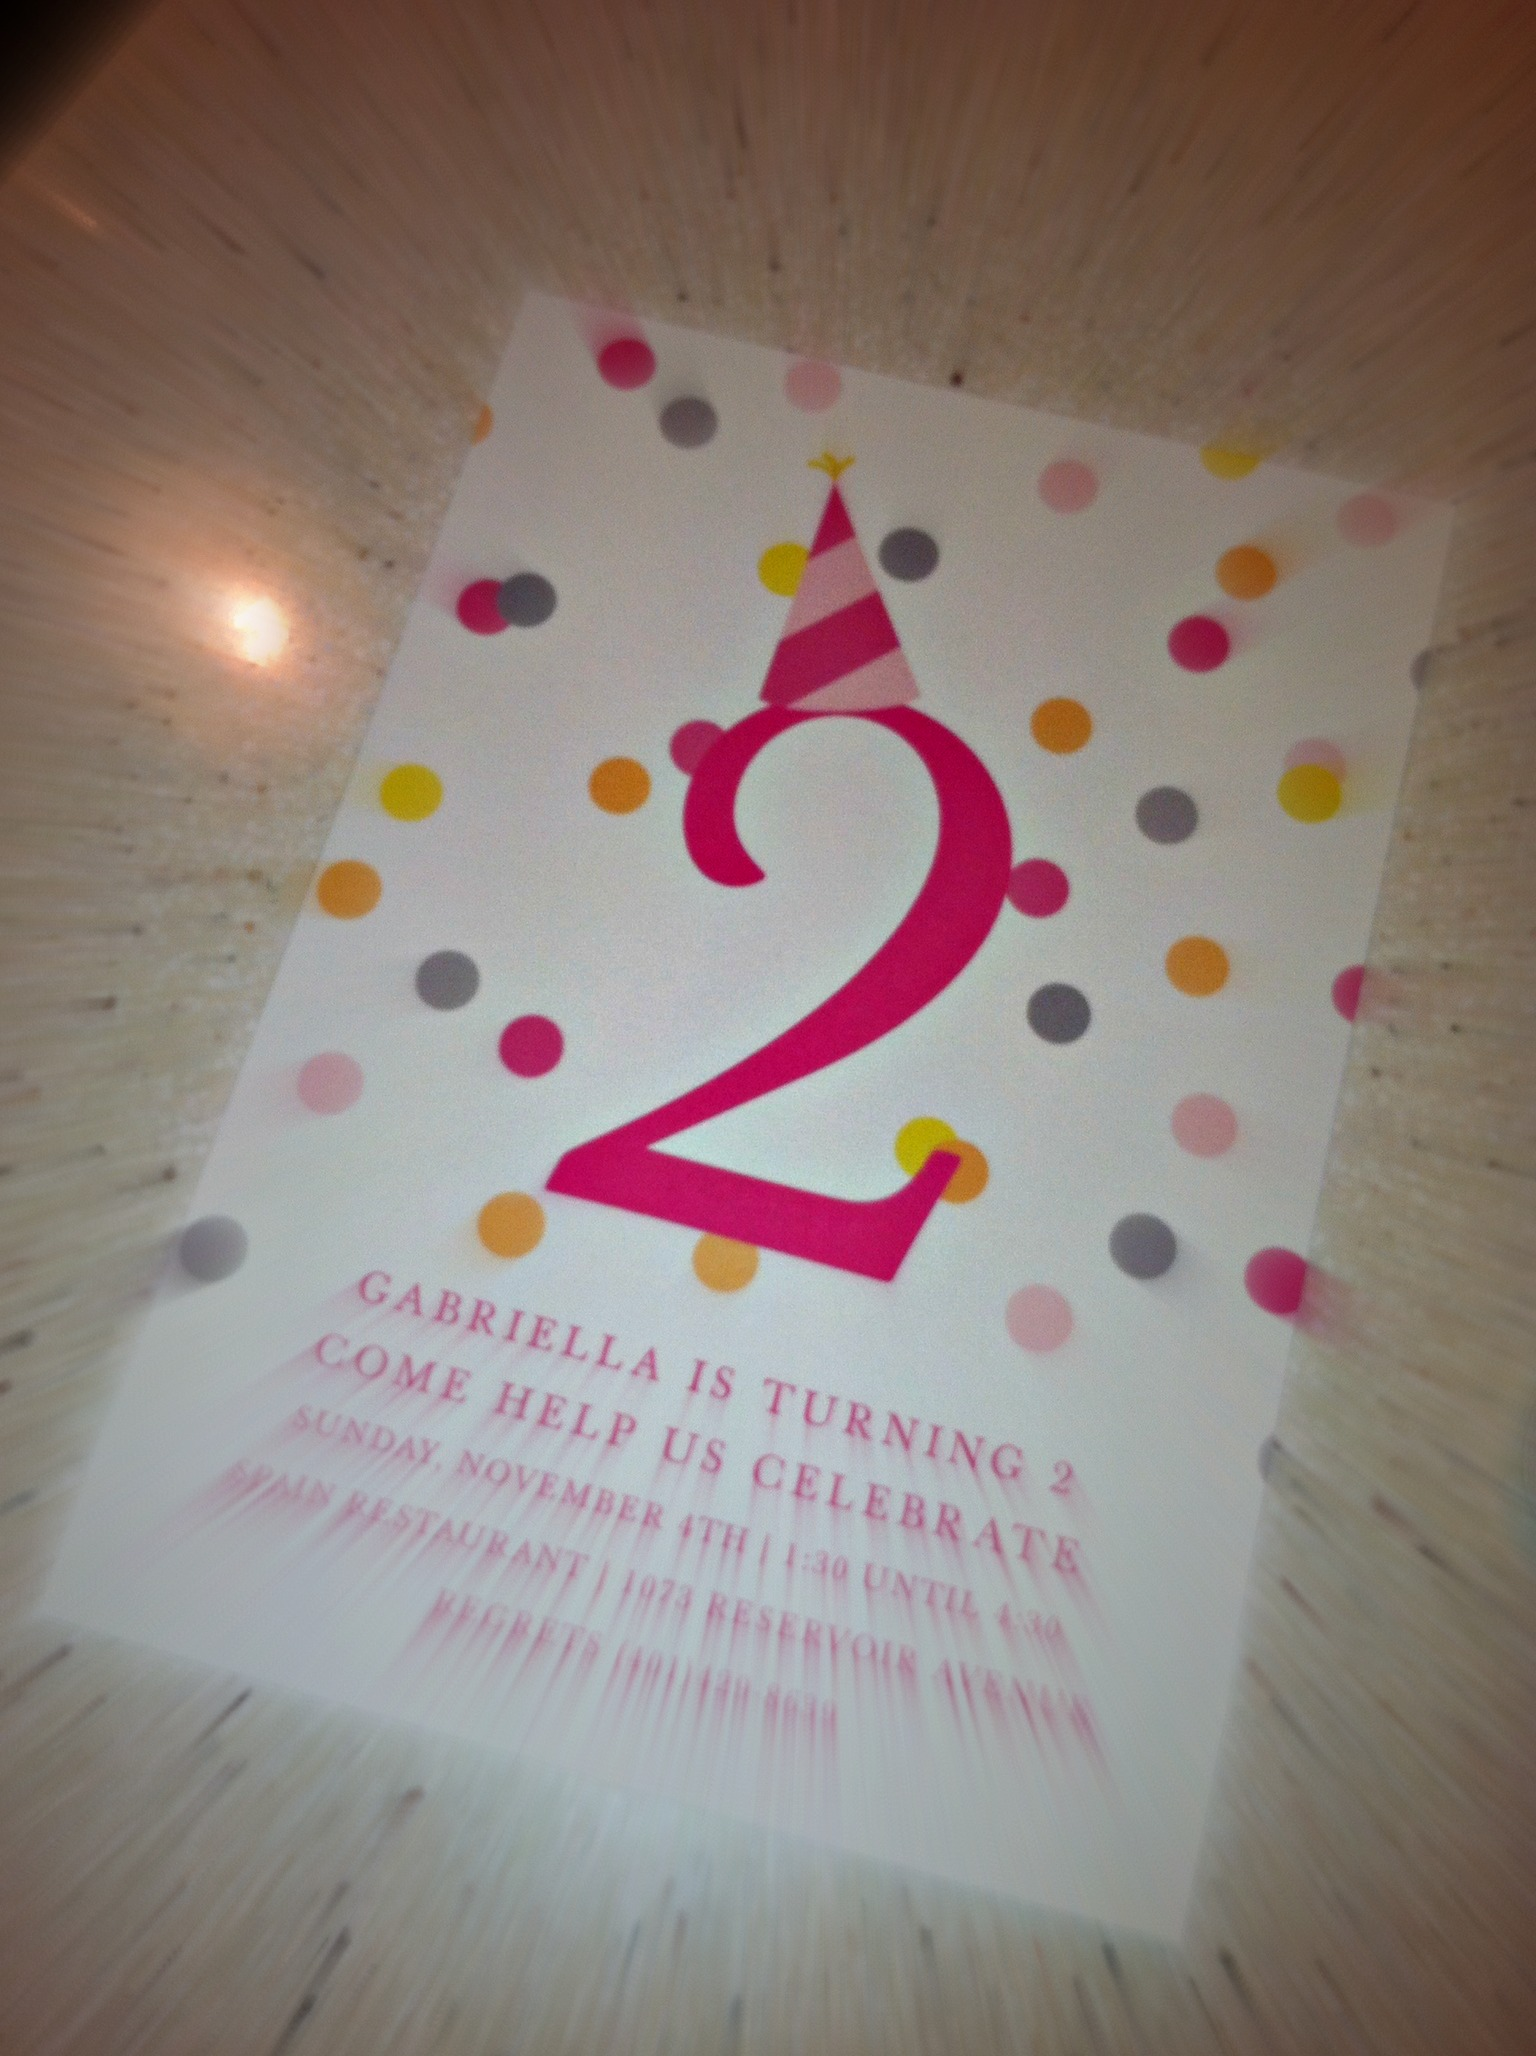 Gabriella's Birthday Cards are Here!